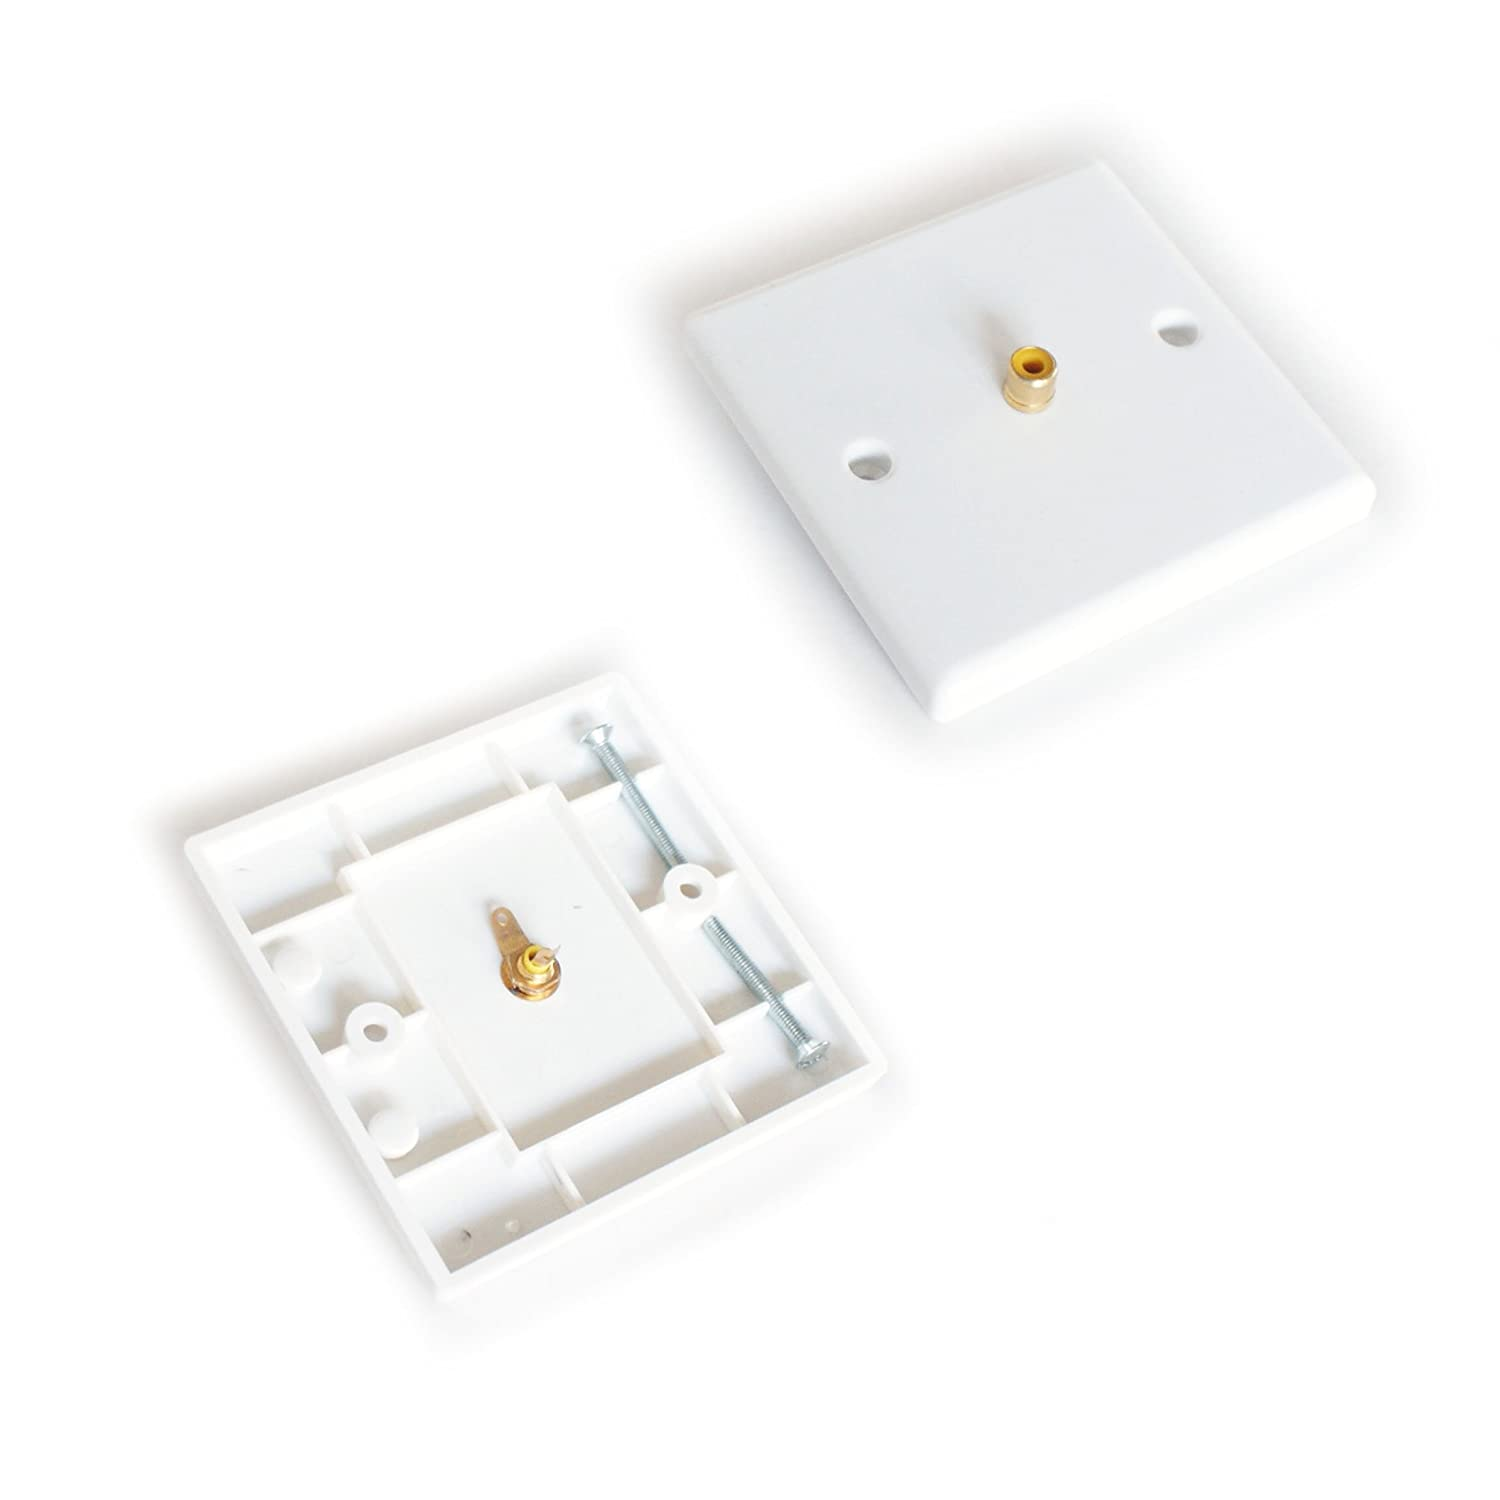 Single 1 RCA/PHONO Female Socket Wall Outlet Face Plate - Audio Sub Coax Composite - CableFinder Loops